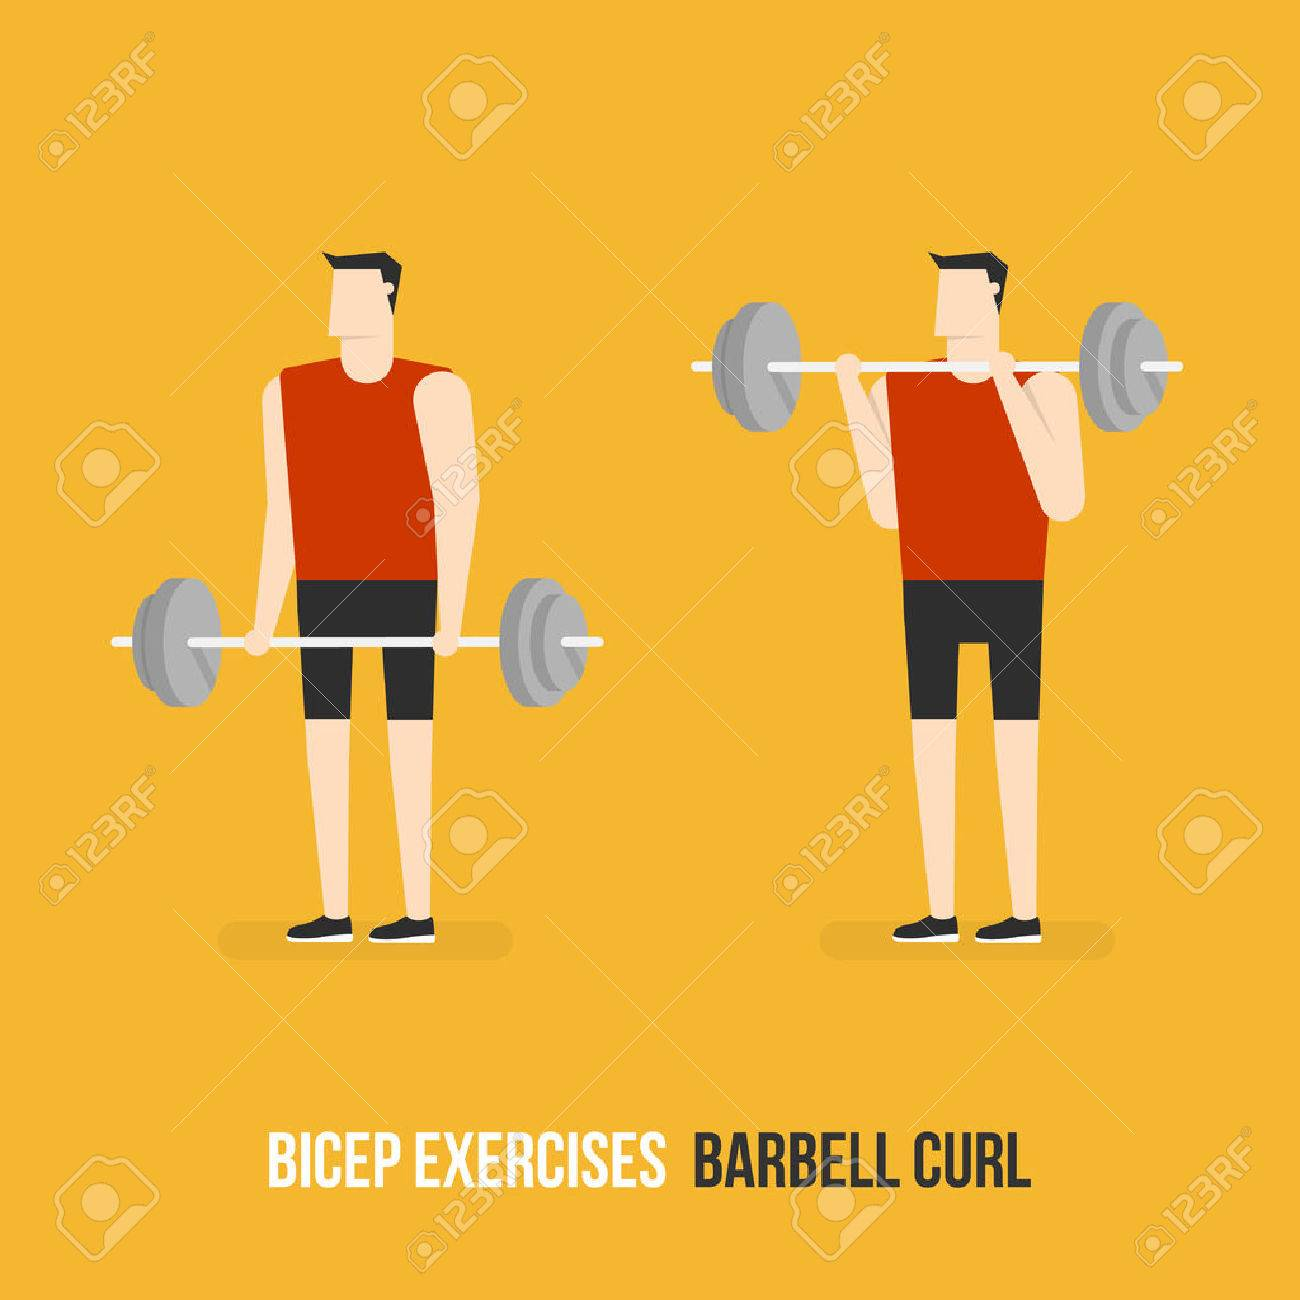 Bicep Exercises. Barbell Curl. Flat Design Bodybuilder Character Lifting Barbell. - 60107864